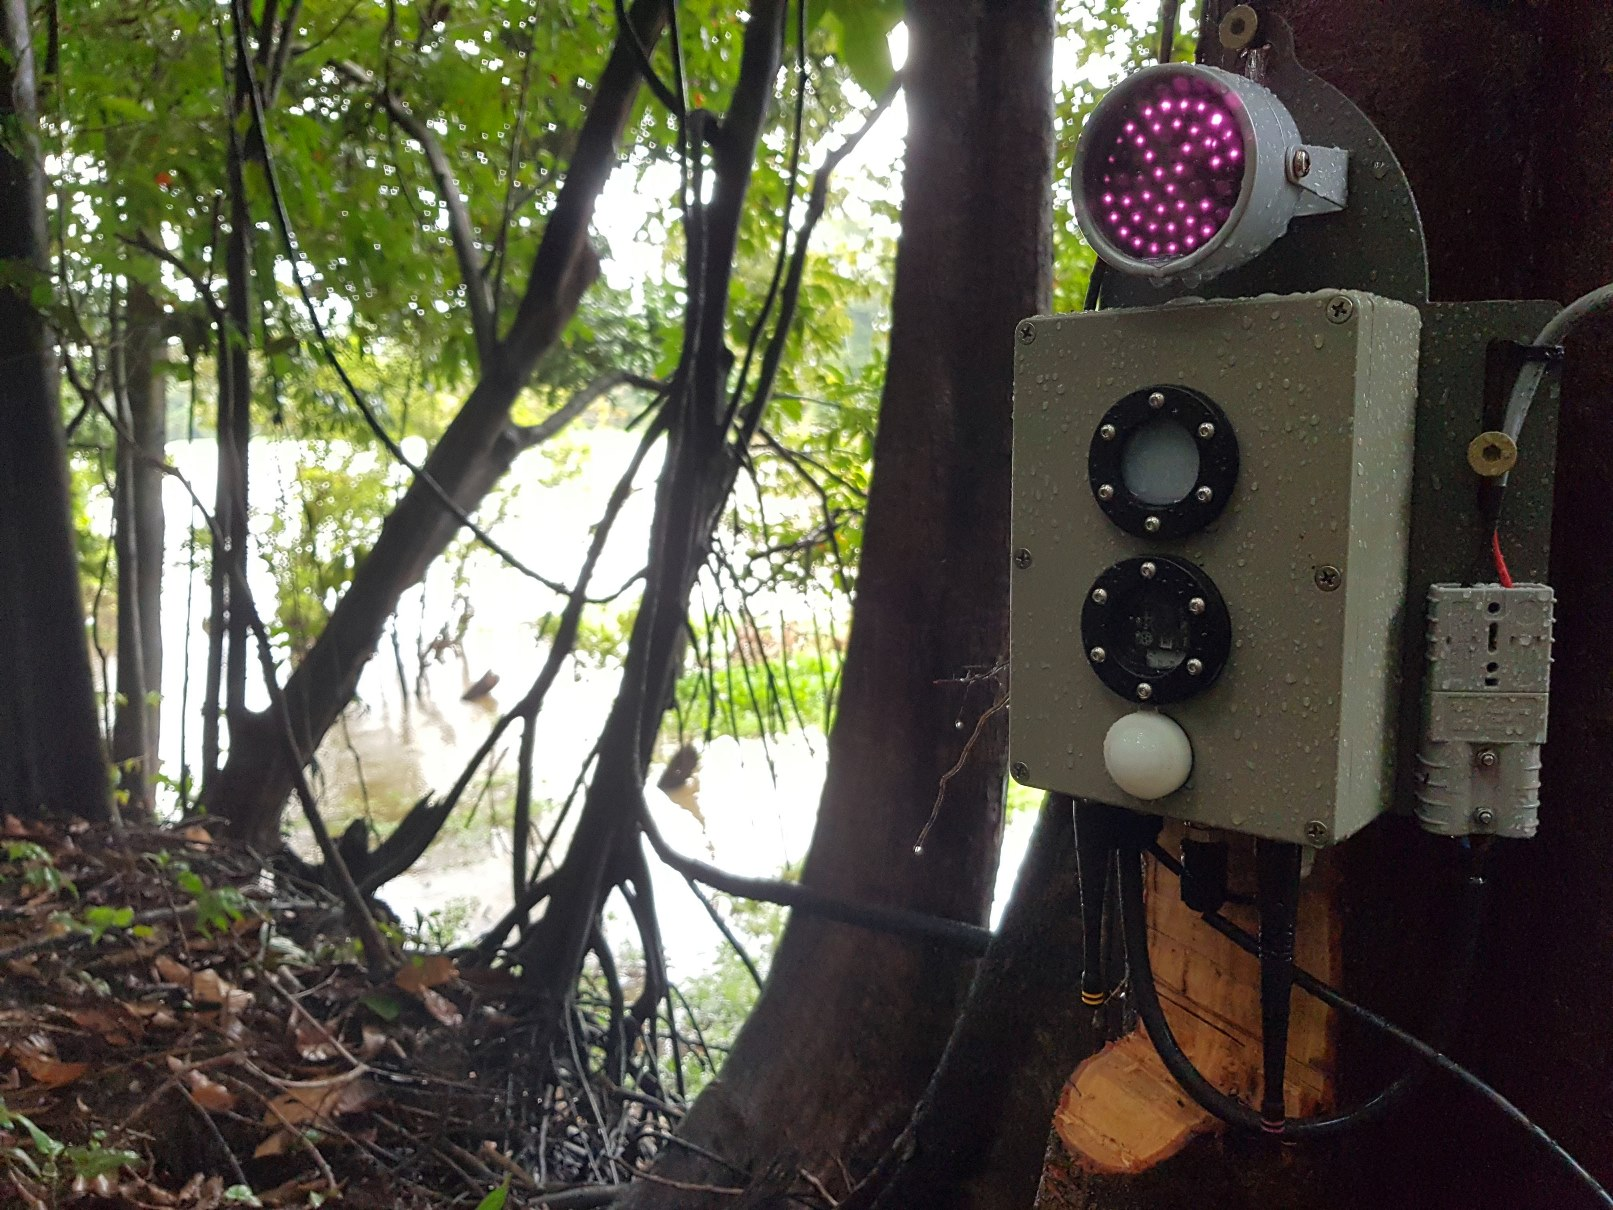 A camera- vision module mounted on a tree. The site is on a bank above the river yet low enough on the tree to capture passing animals.